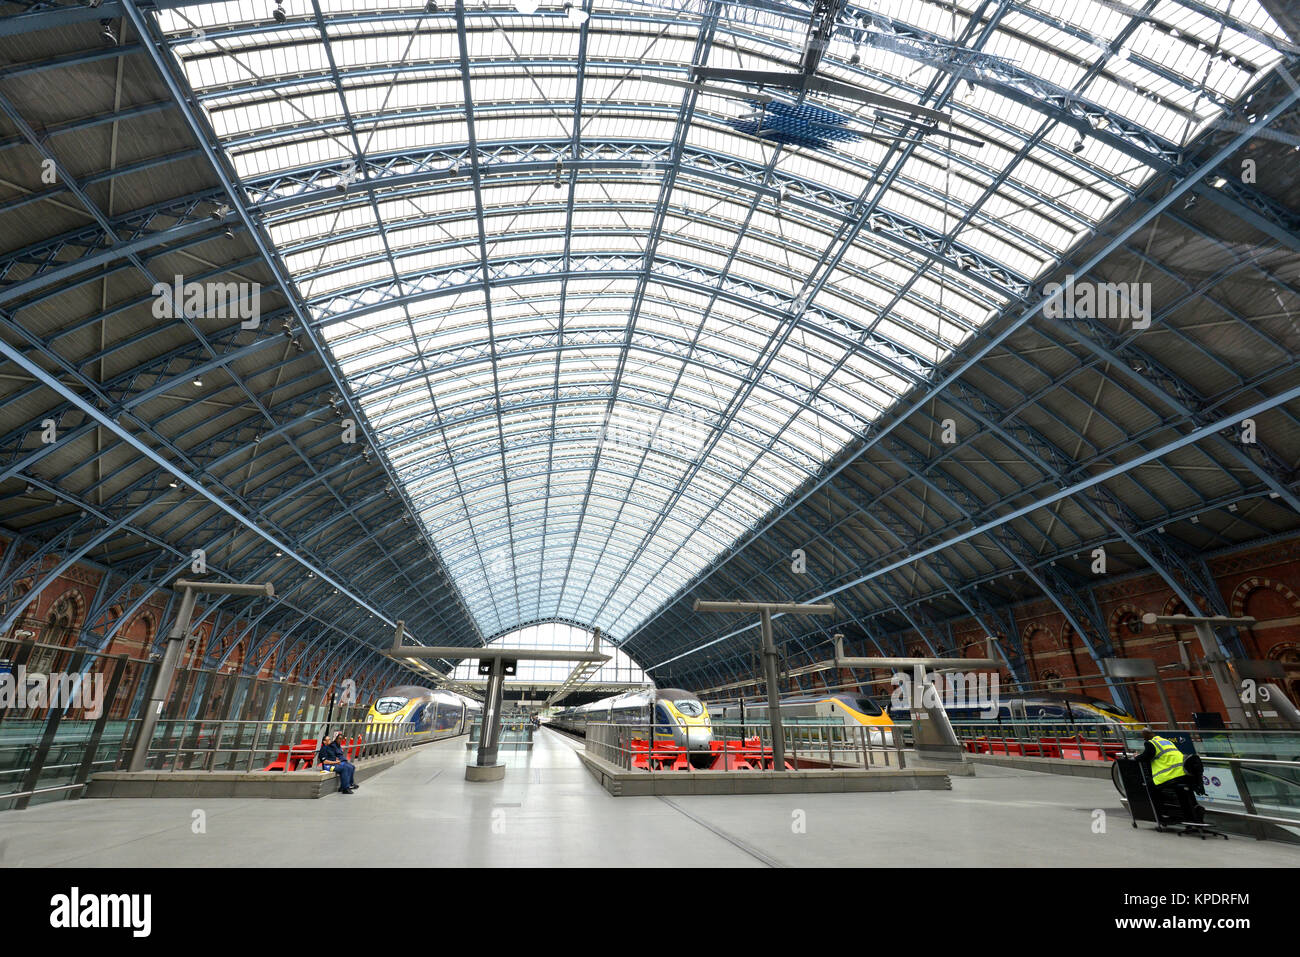 St Pancras Station, London. - Stock Image